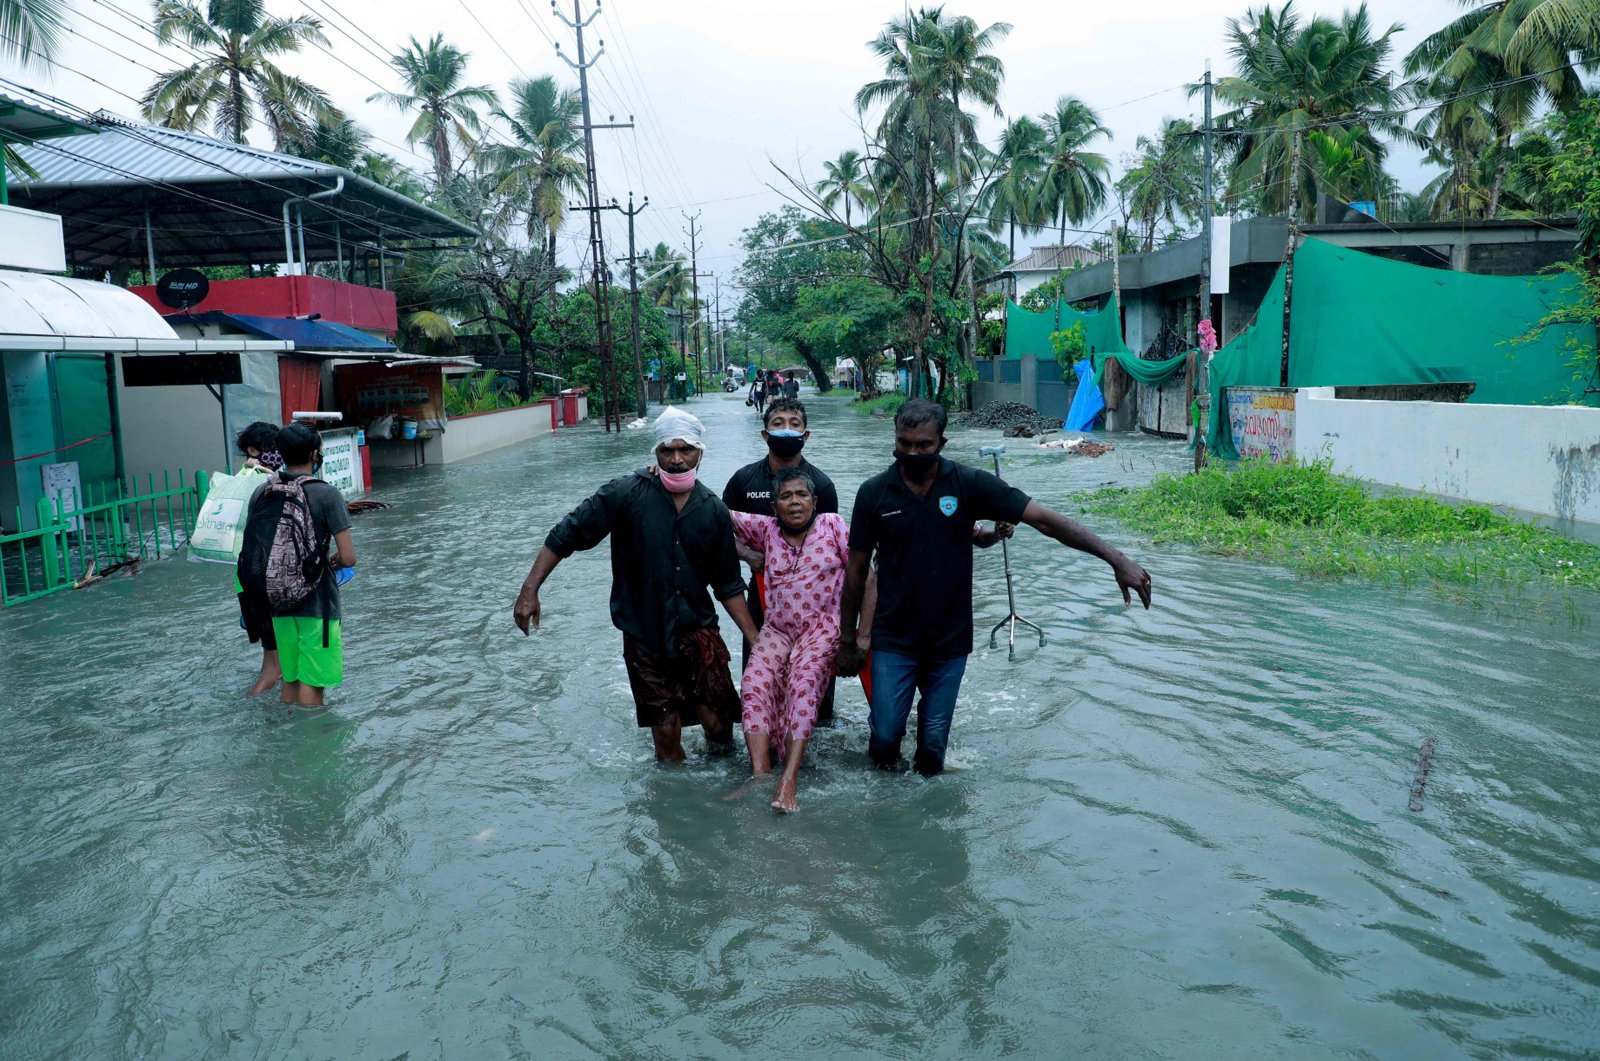 Police and rescue personnel evacuate a local resident through a flooded street in a coastal area after heavy rains under the influence of cyclone 'Tauktae' in Kochi, India, May 14, 2021. (AFP Photo)